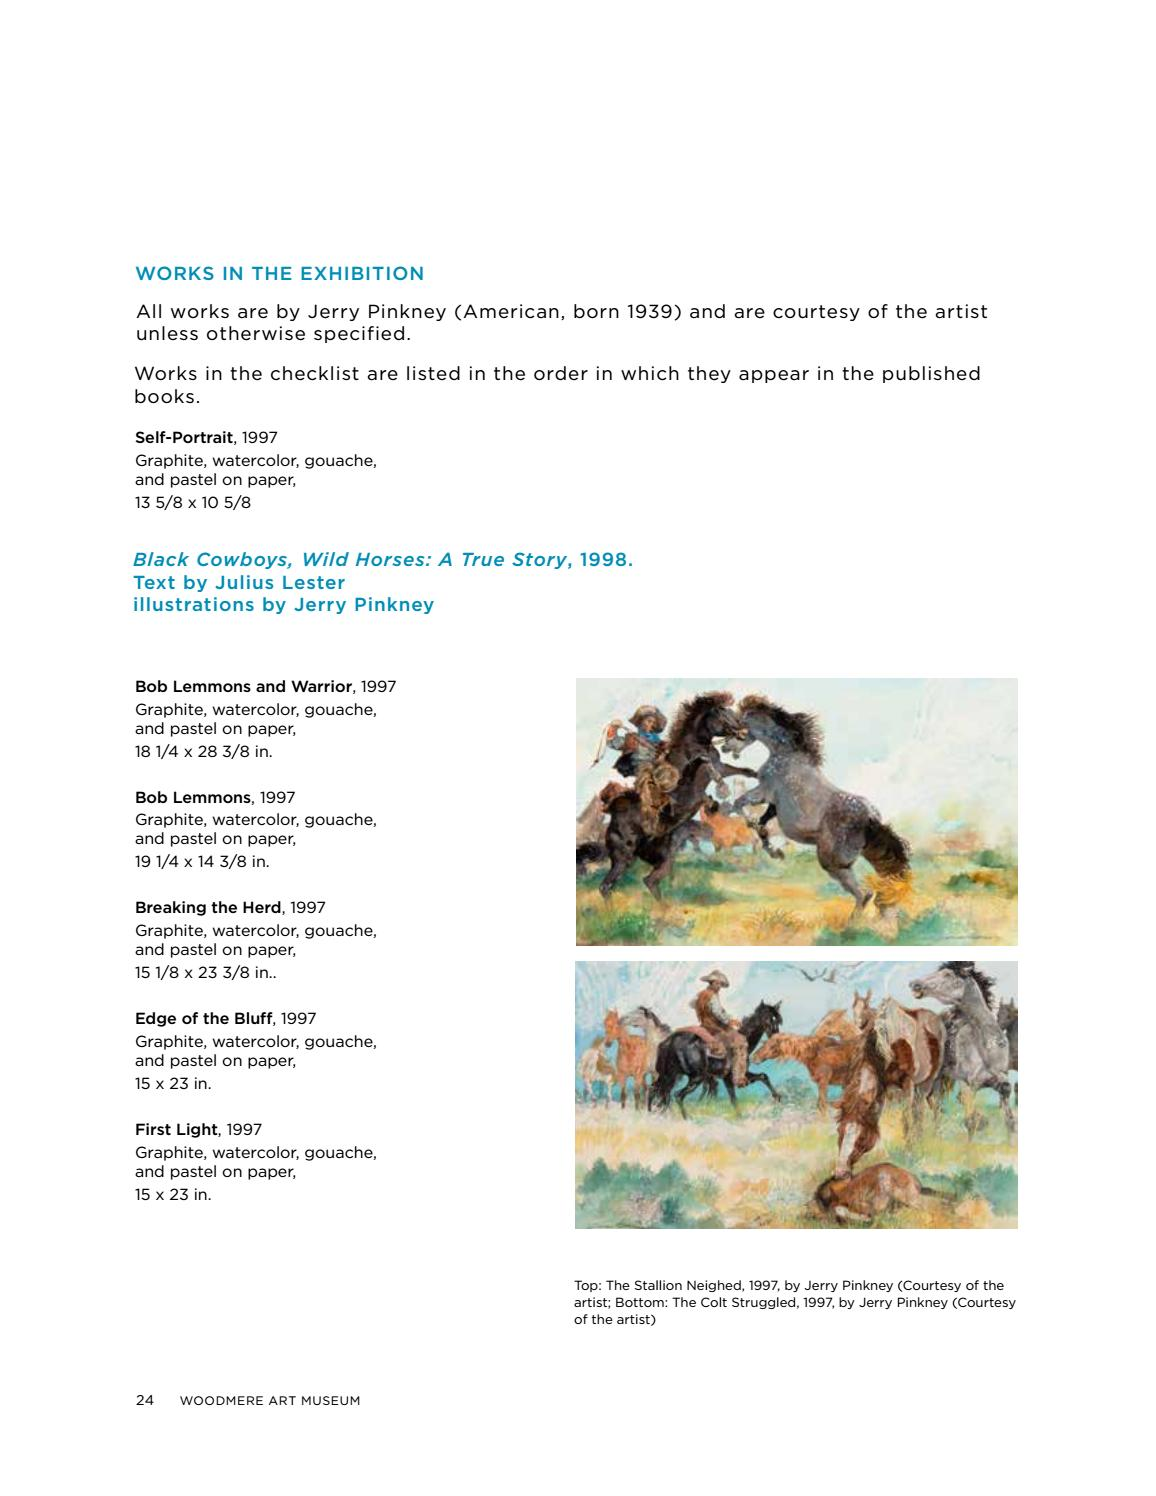 The Storybook Magic Of Jerry Pinkney By Woodmere Art Museum Issuu